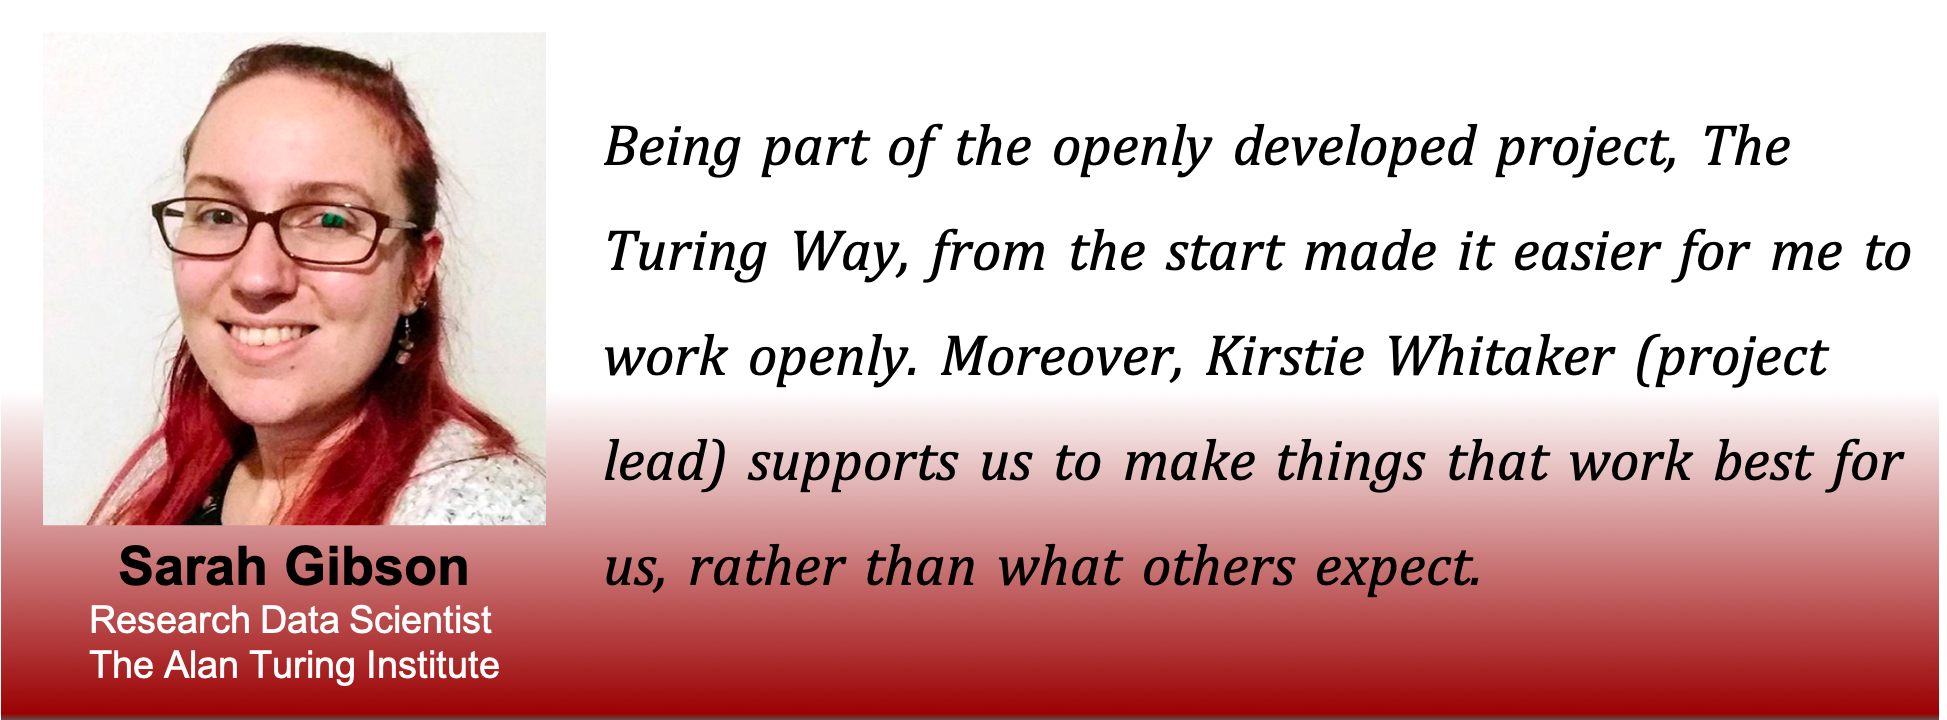 Picture of Sarah with the caption: being part of the openly developed project, The Turing Way, from the start made it easier for me to work openly. Moreover, Kirstie Whitaker (project lead) supports us to make things that work best for us, rather than what others expect.